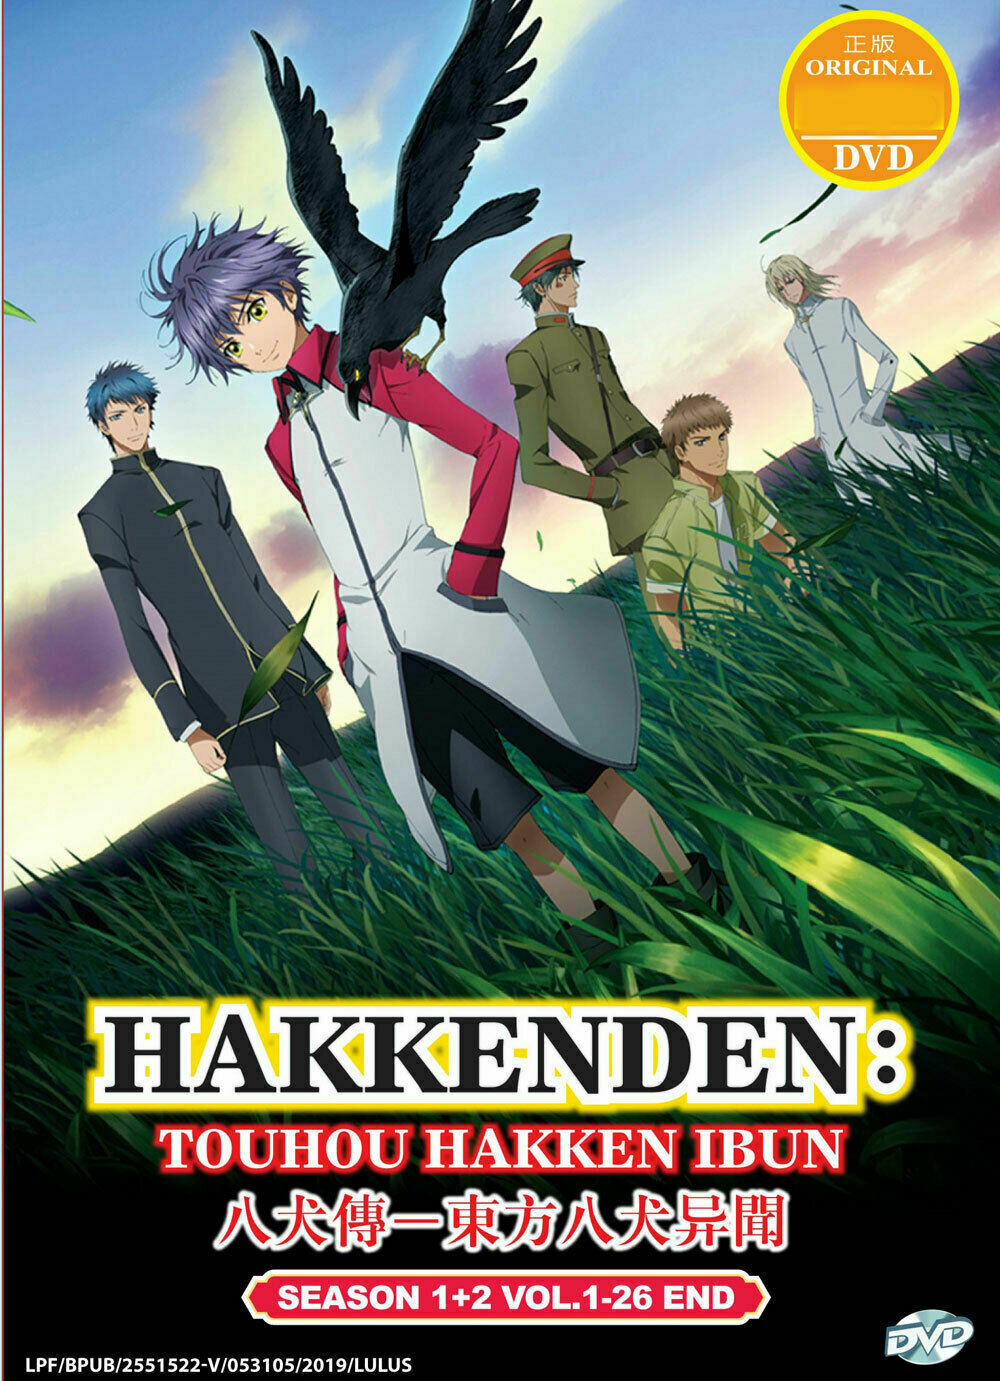 Hakkenden: Touhou Hakken Ibun DVD Season 1+2 Vol. 1-26 end English Ship From USA